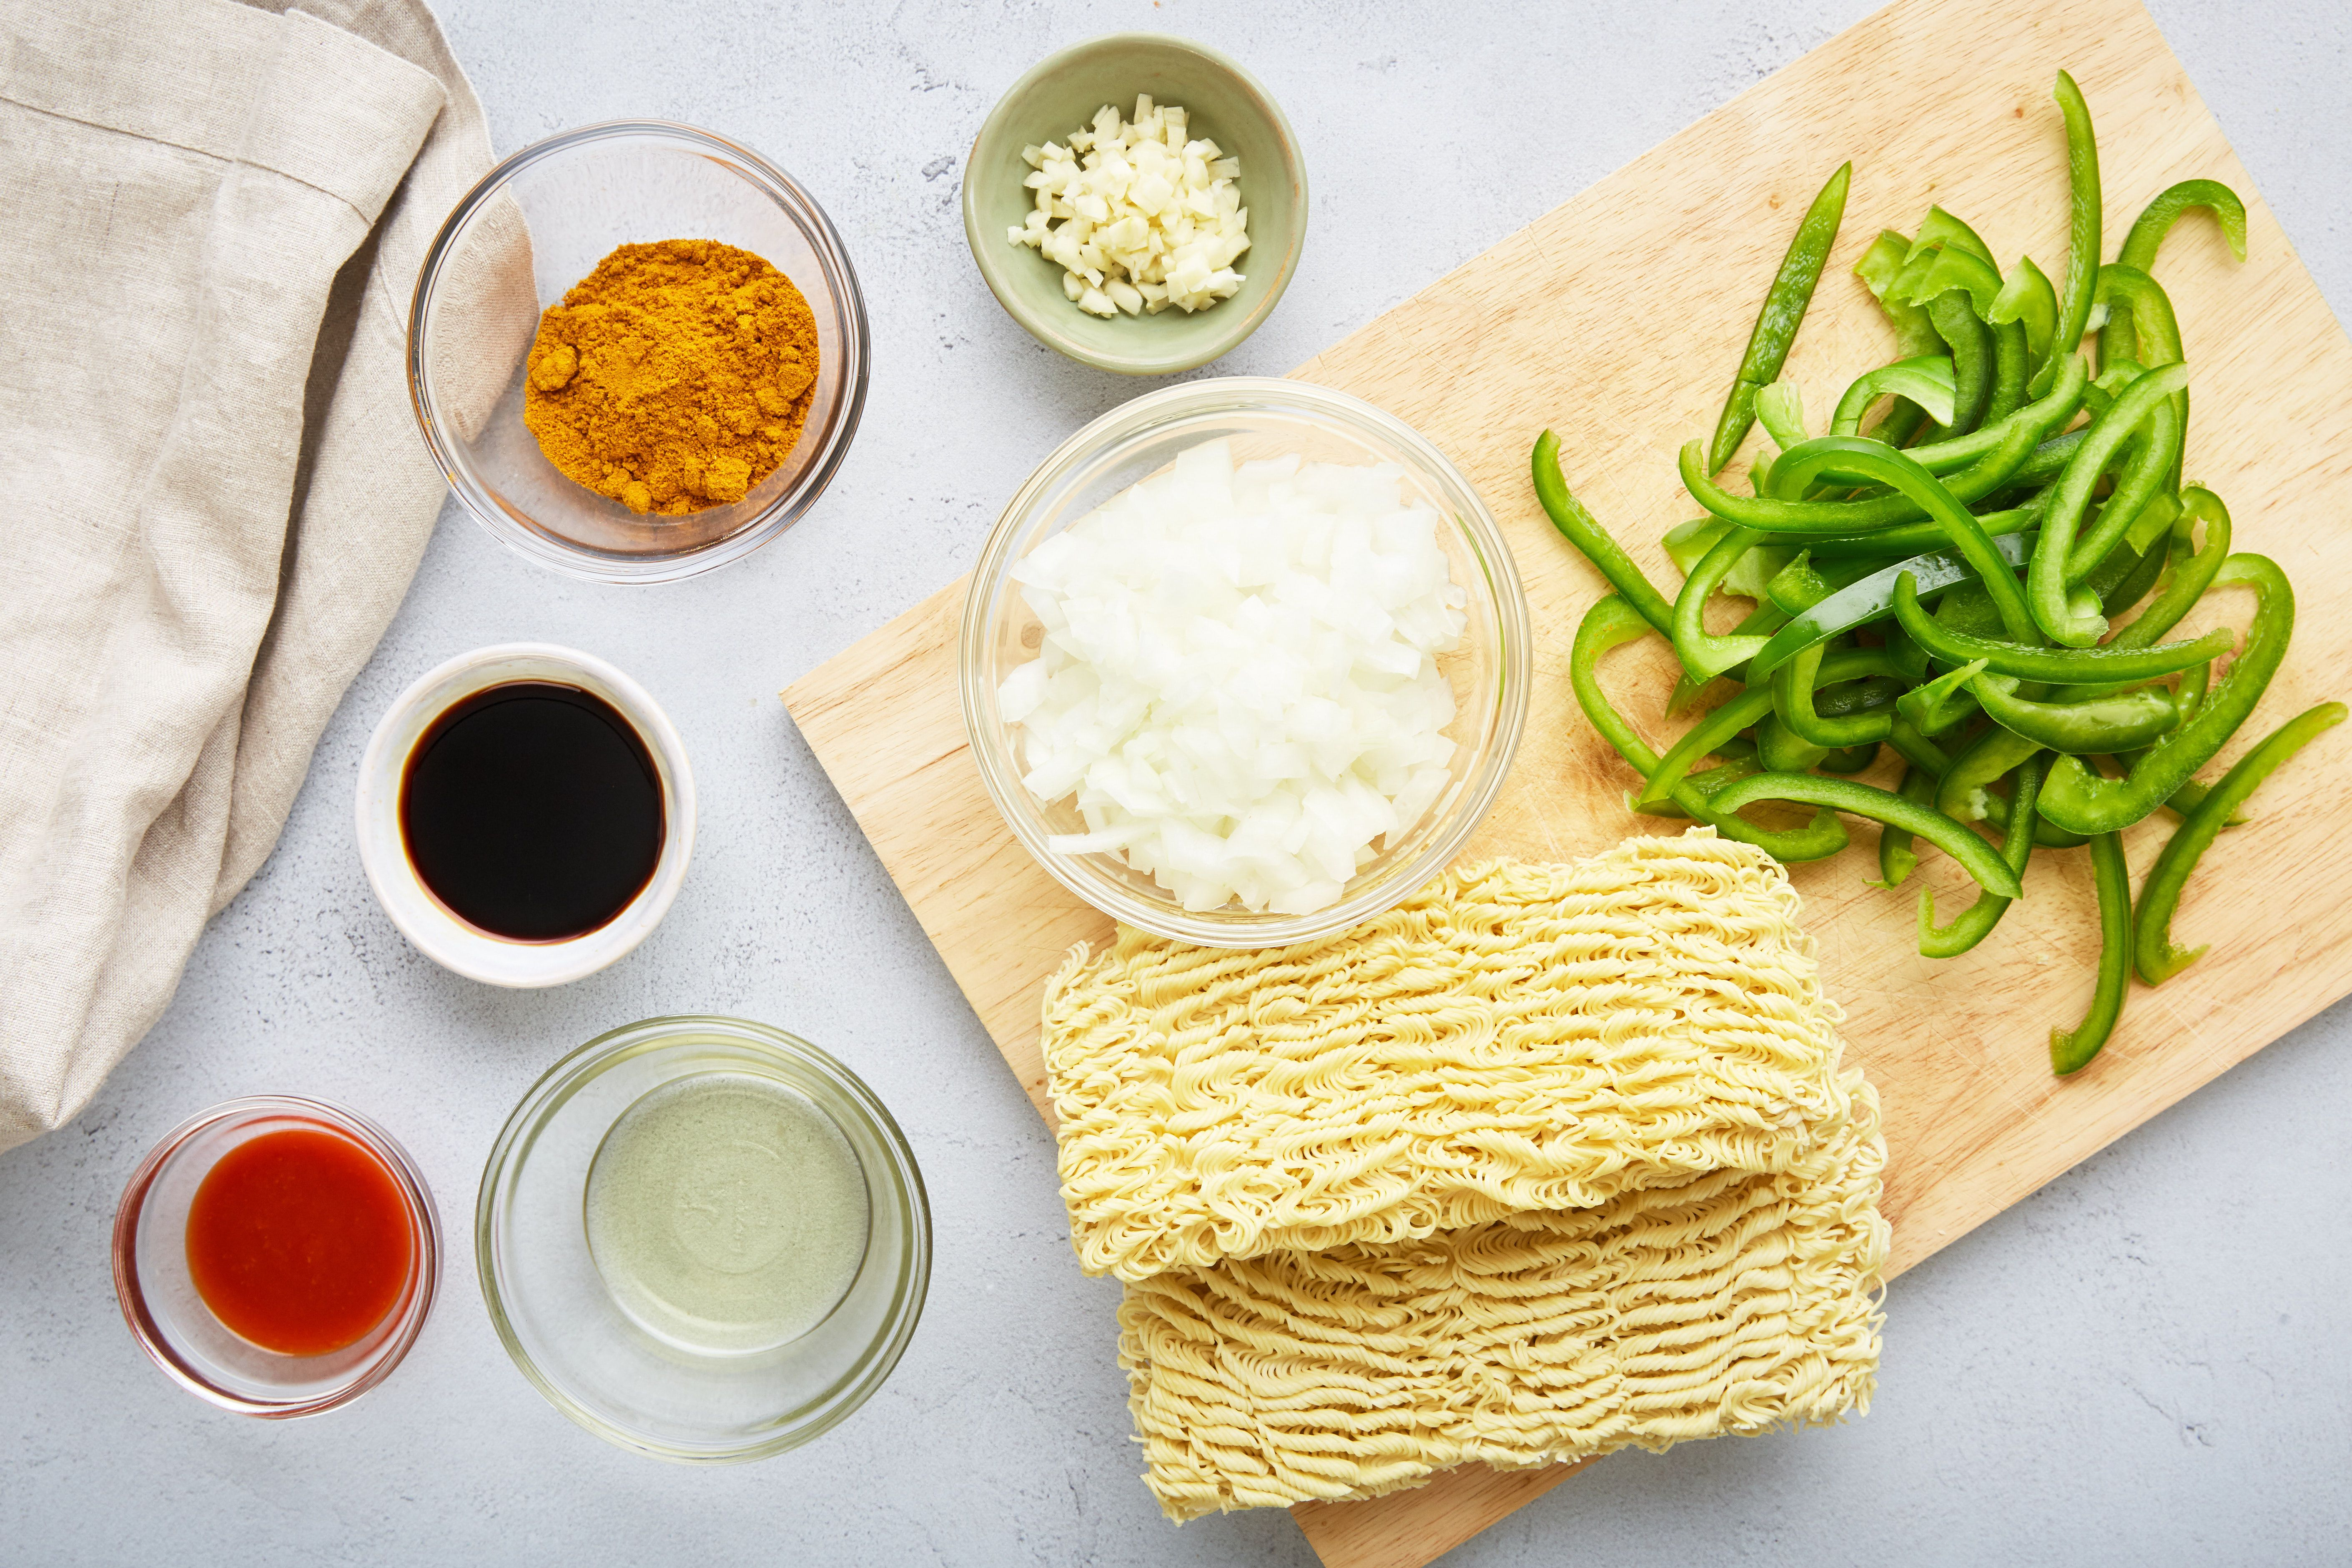 Ingredients for easy Singapore noodles